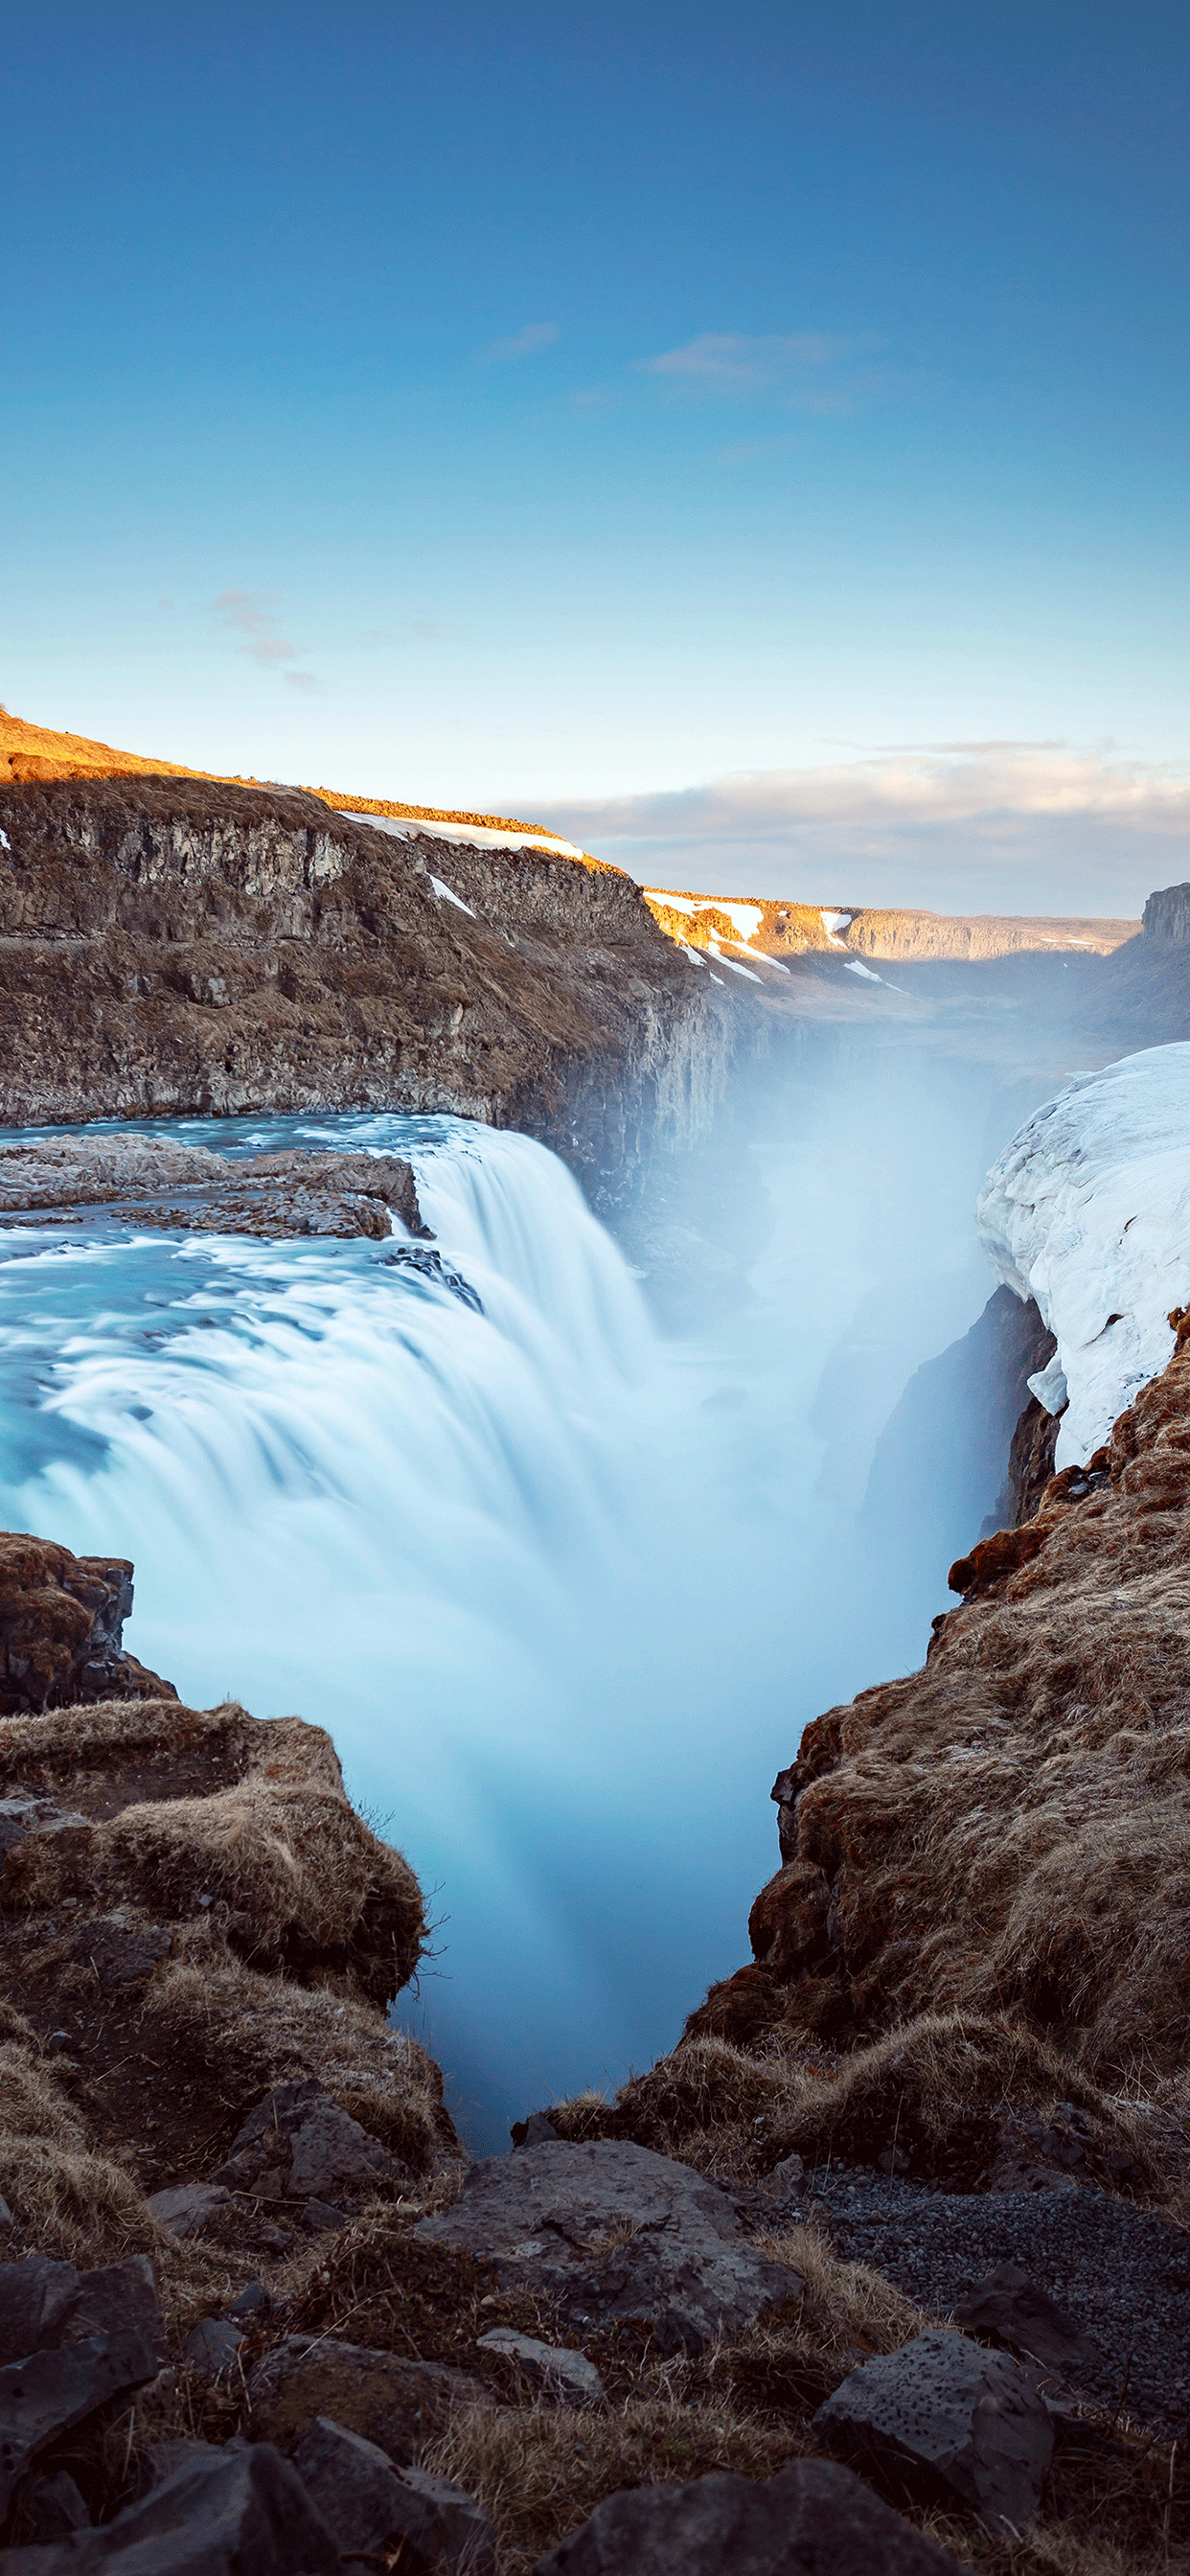 iPhone wallpaper iceland gullfoss falls Iceland